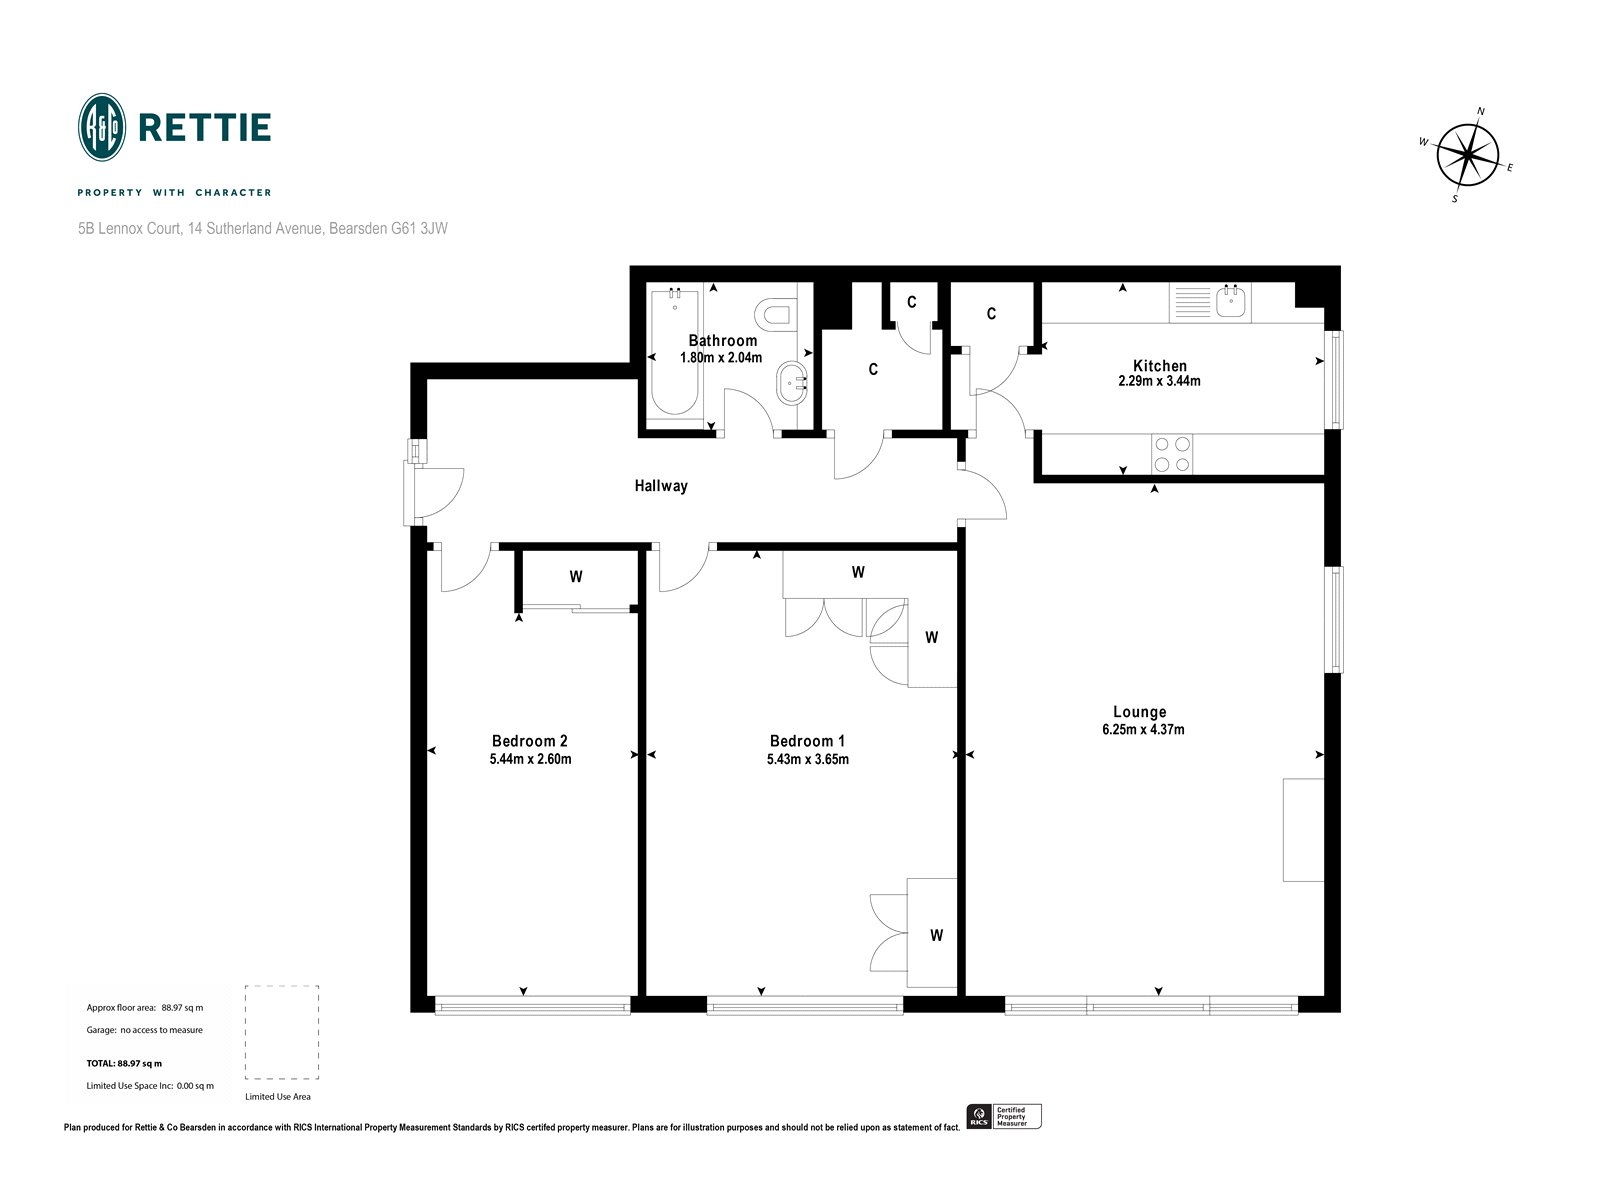 Floorplans for Lennox Court, 14 Sutherland Avenue, Bearsden, G61